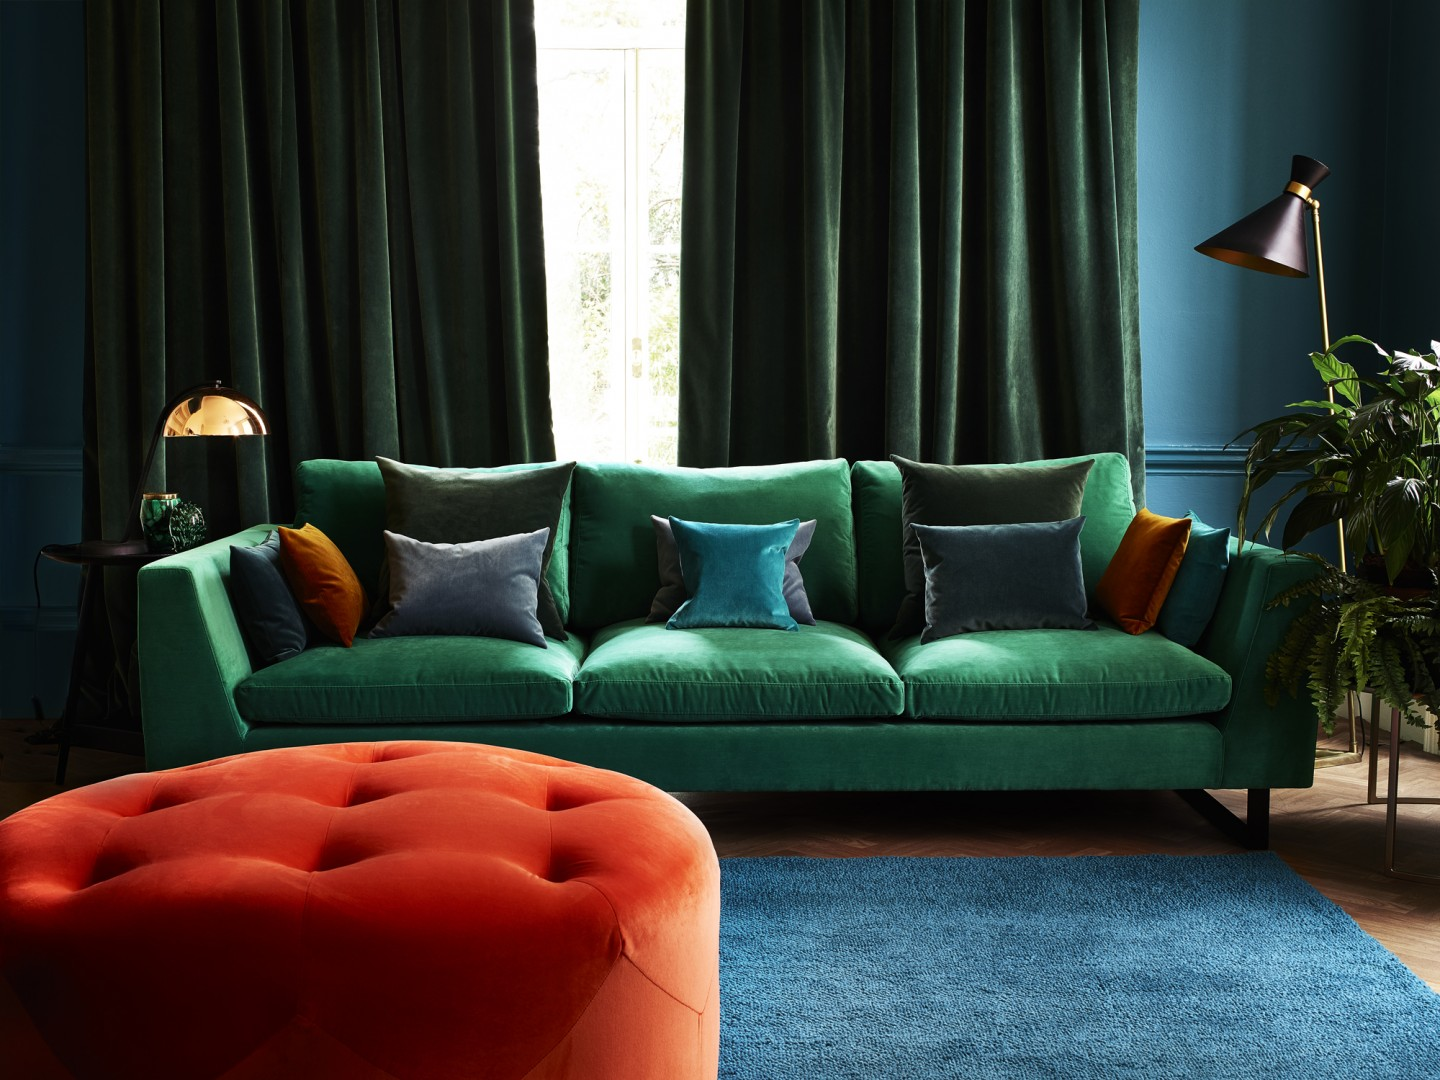 Bespoke Upholstery making a statement Emerald and Teal sofa